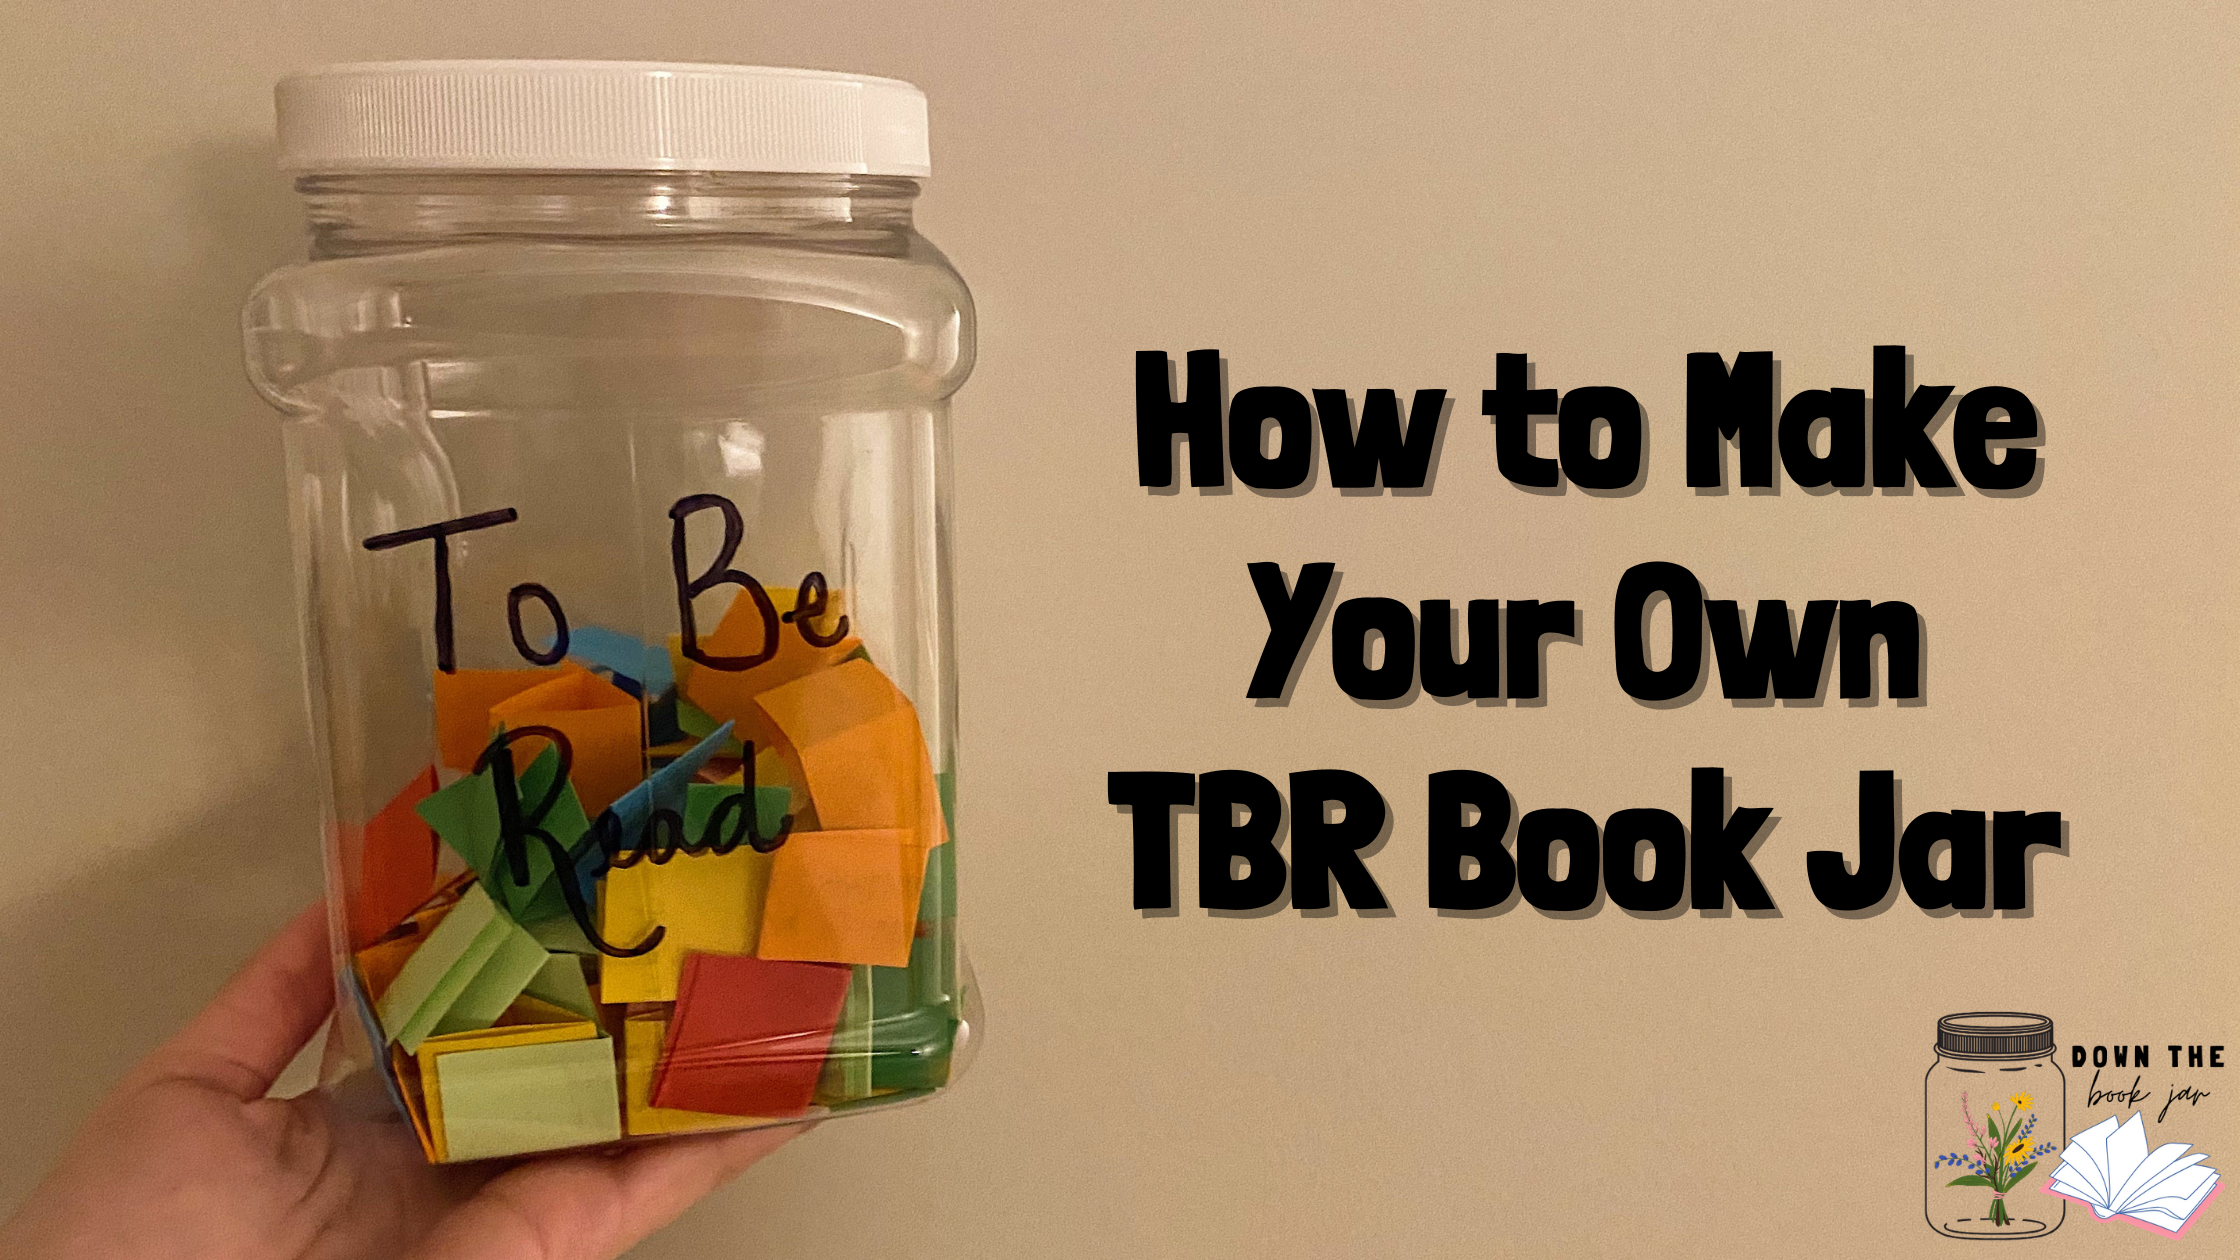 How to Make Your Own TBR Book Jar